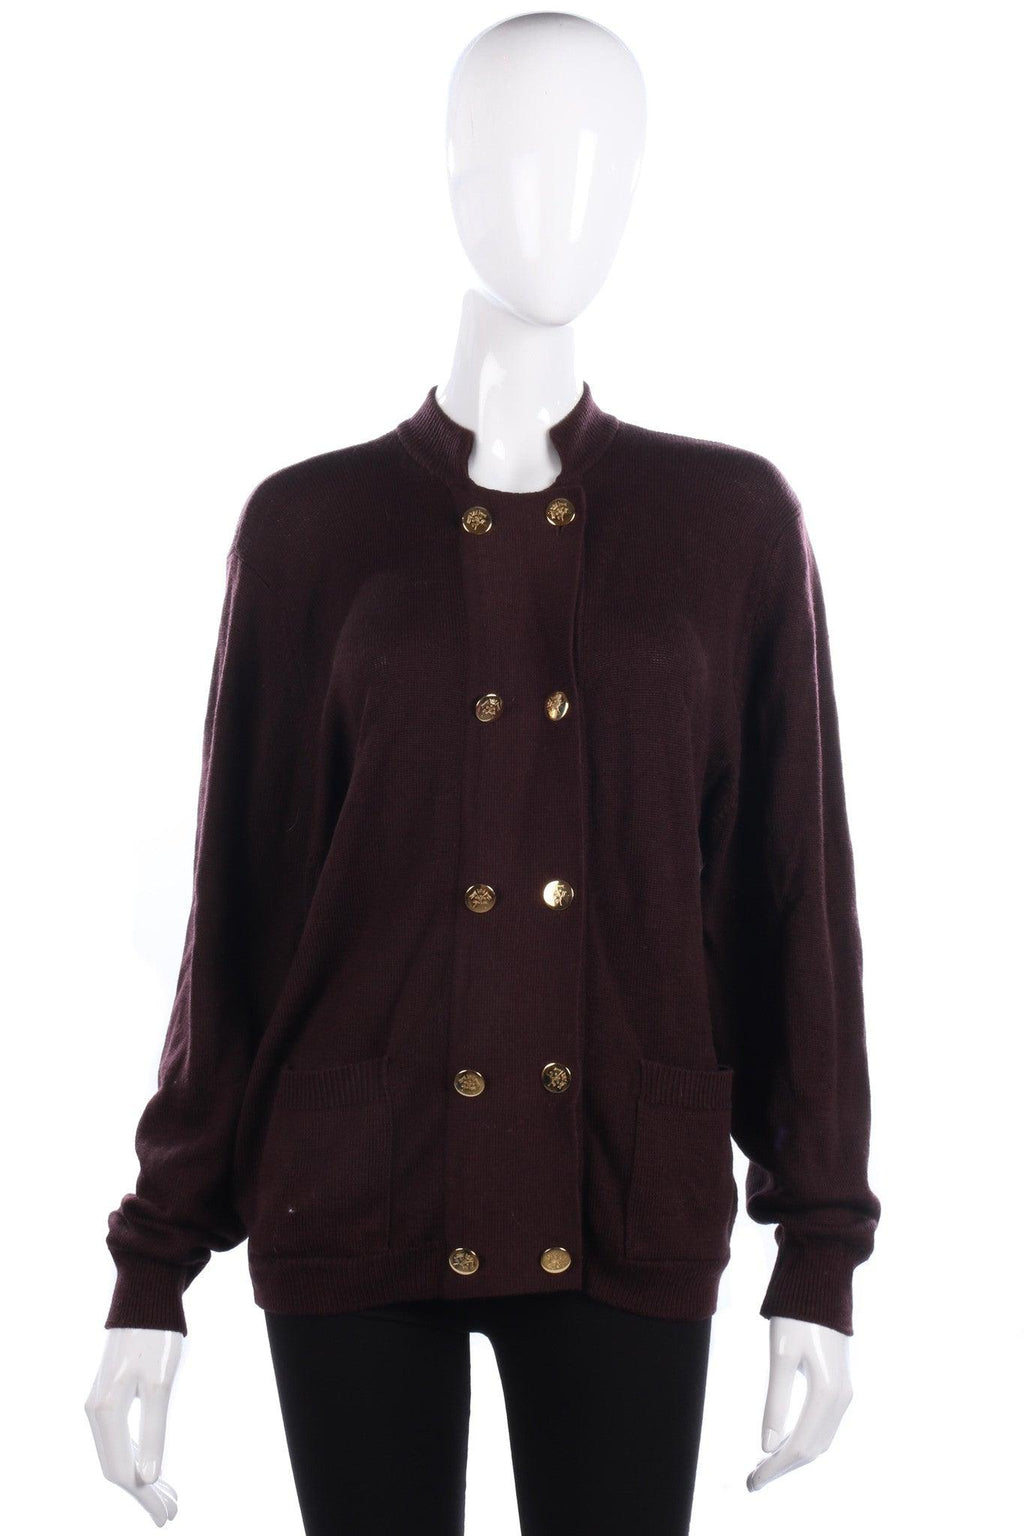 Straven of Scotland Pure Wool Cardigan Brown with Gold Buttons. UK10